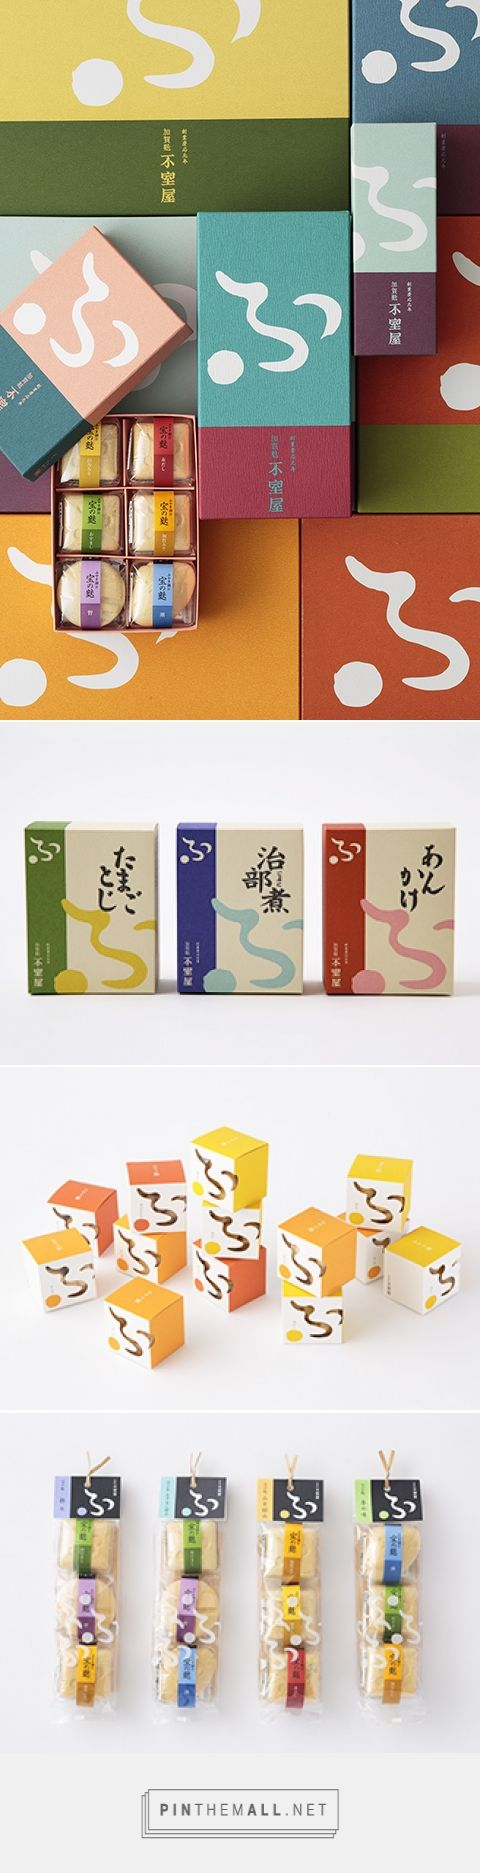 KAGAFU FUMUROYA via AWATSUJI design curated by Packaging Diva PD. Love this colorful packaging and branding.